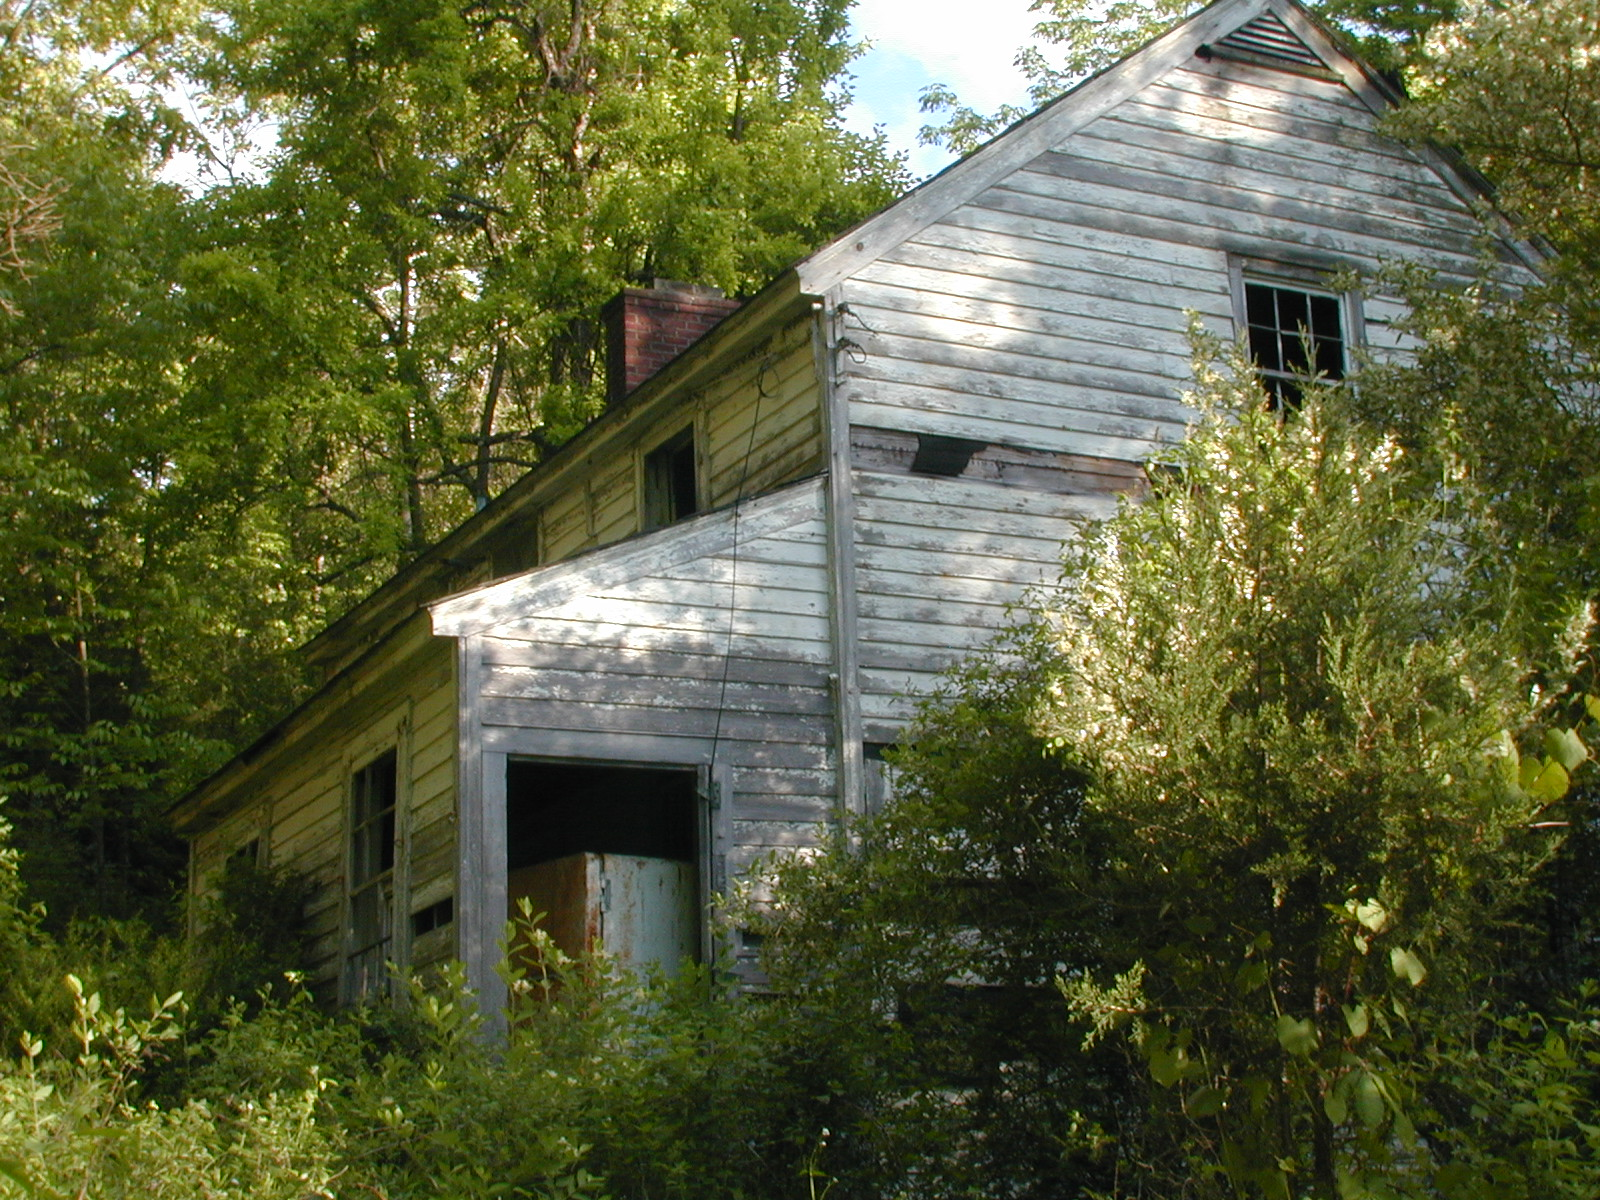 A rear quarter view of the second house